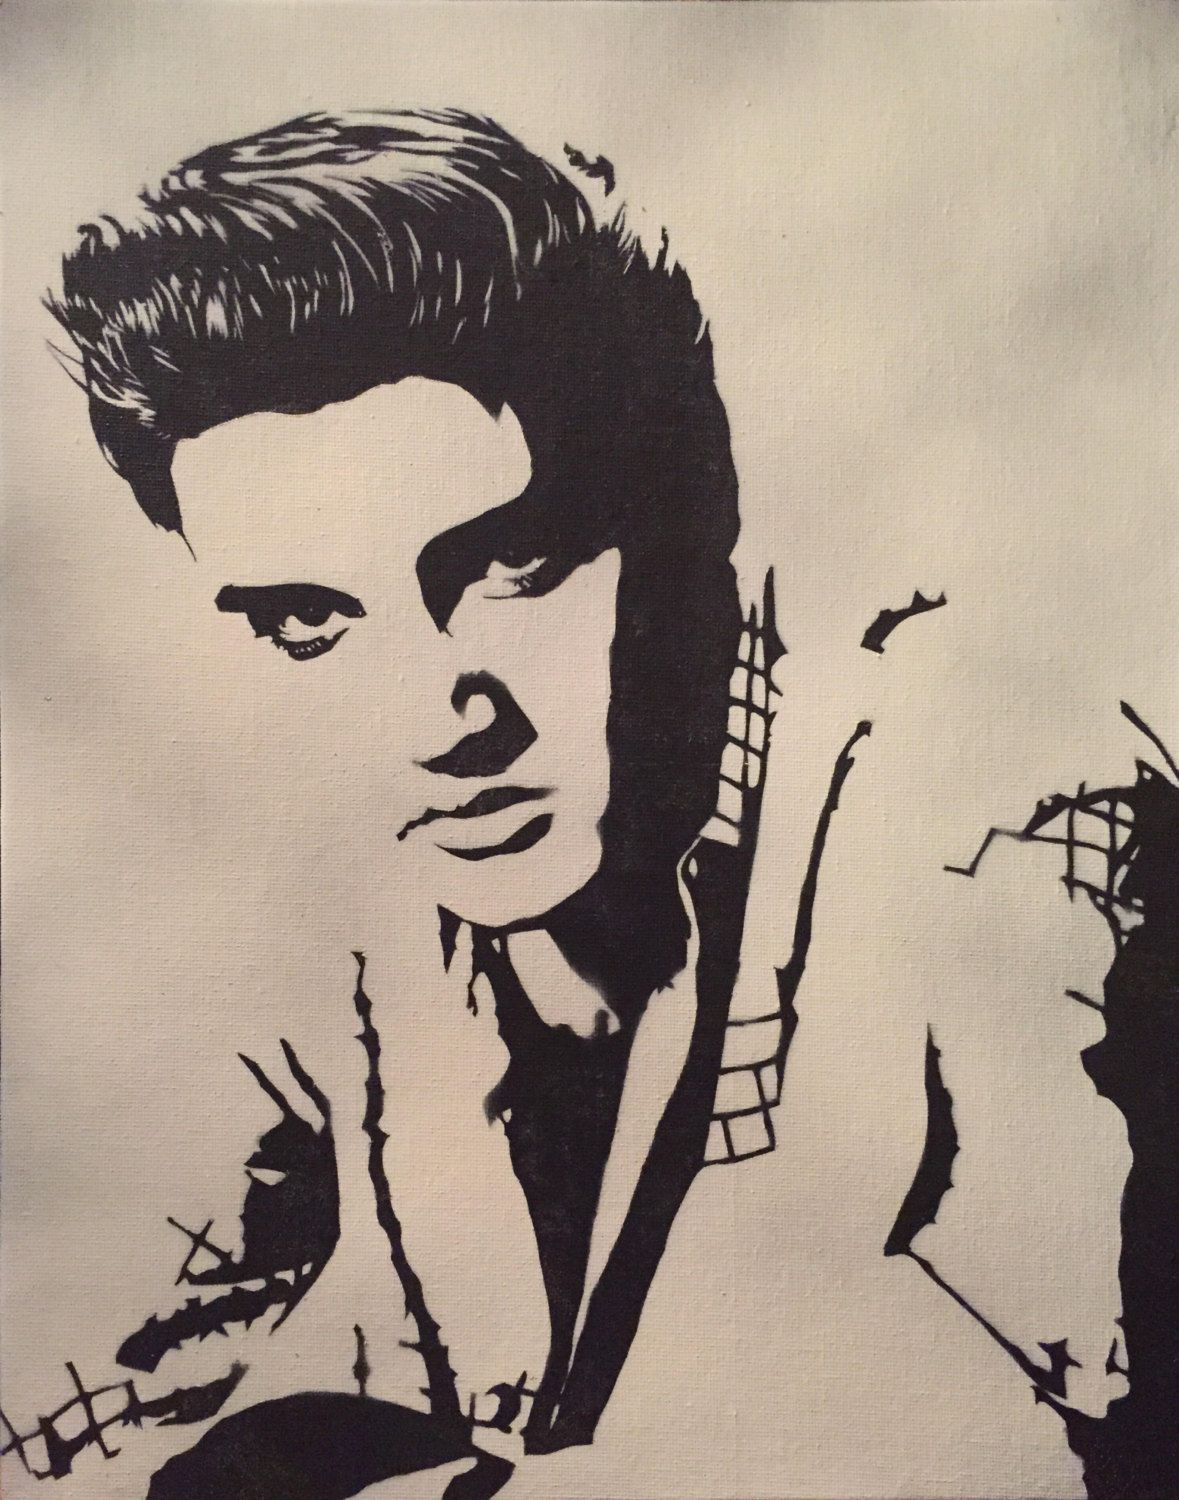 """PRINT - 11""""x14"""" painting 'Elvis' - Original painting of the King of Rock and roll, Elvis Presley, Art, Black and White, B&W by killadeathspray on Etsy"""